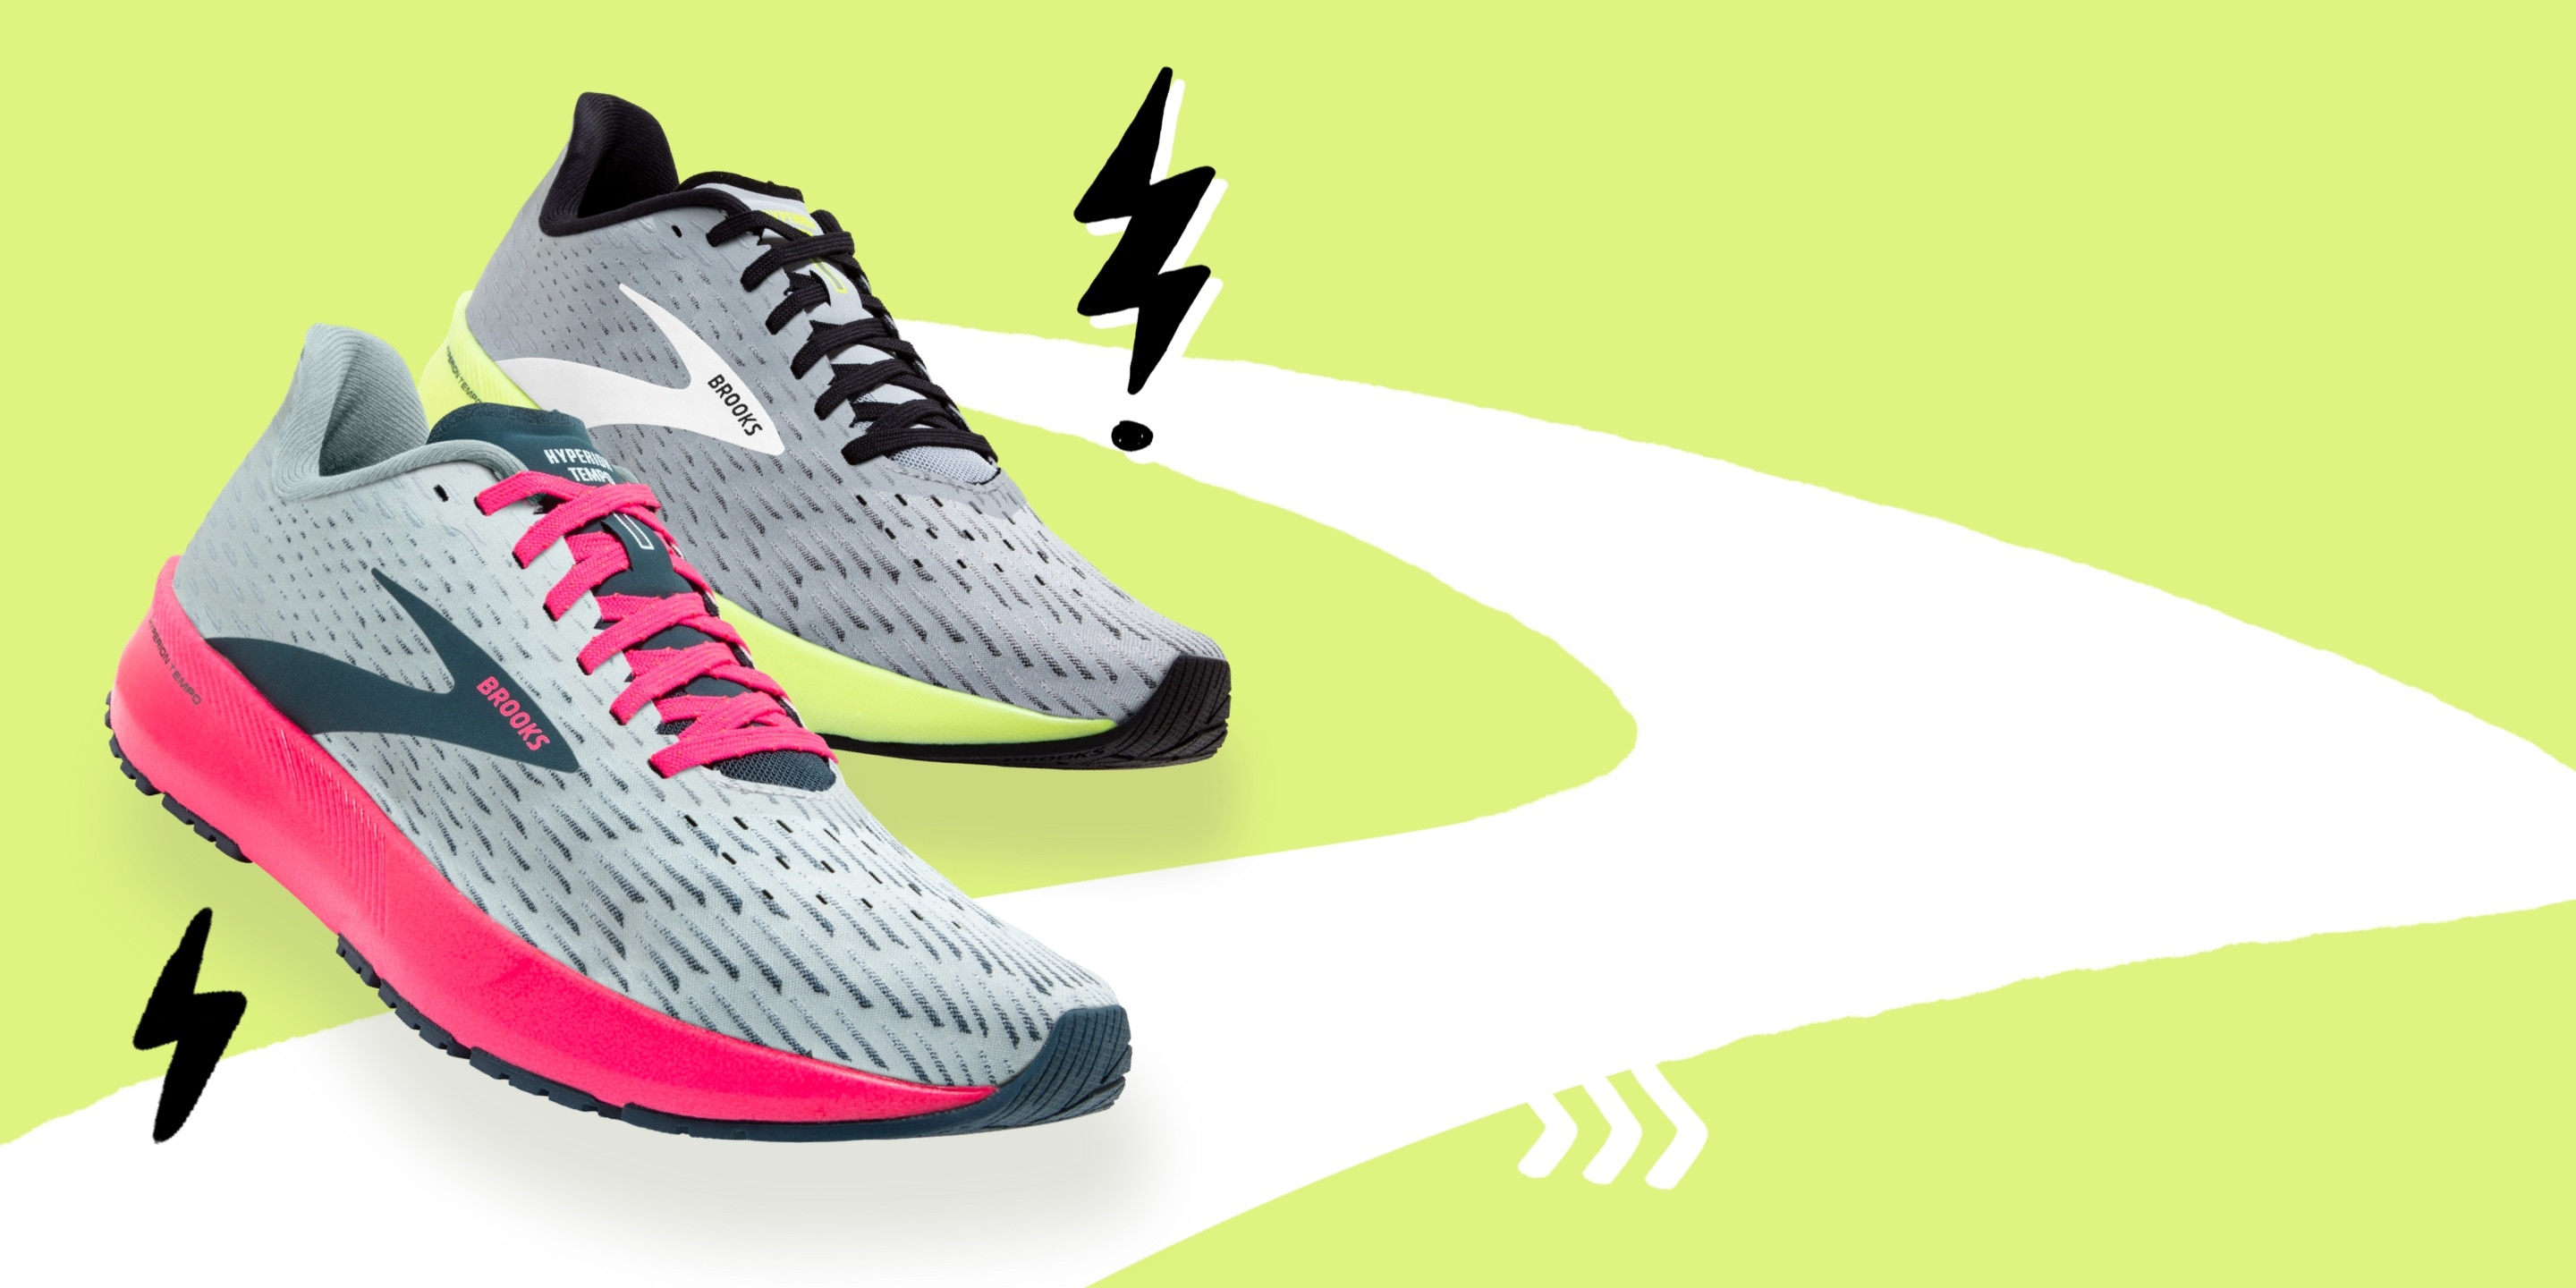 a grey and pink and a yellow and grey hyperion tempo.